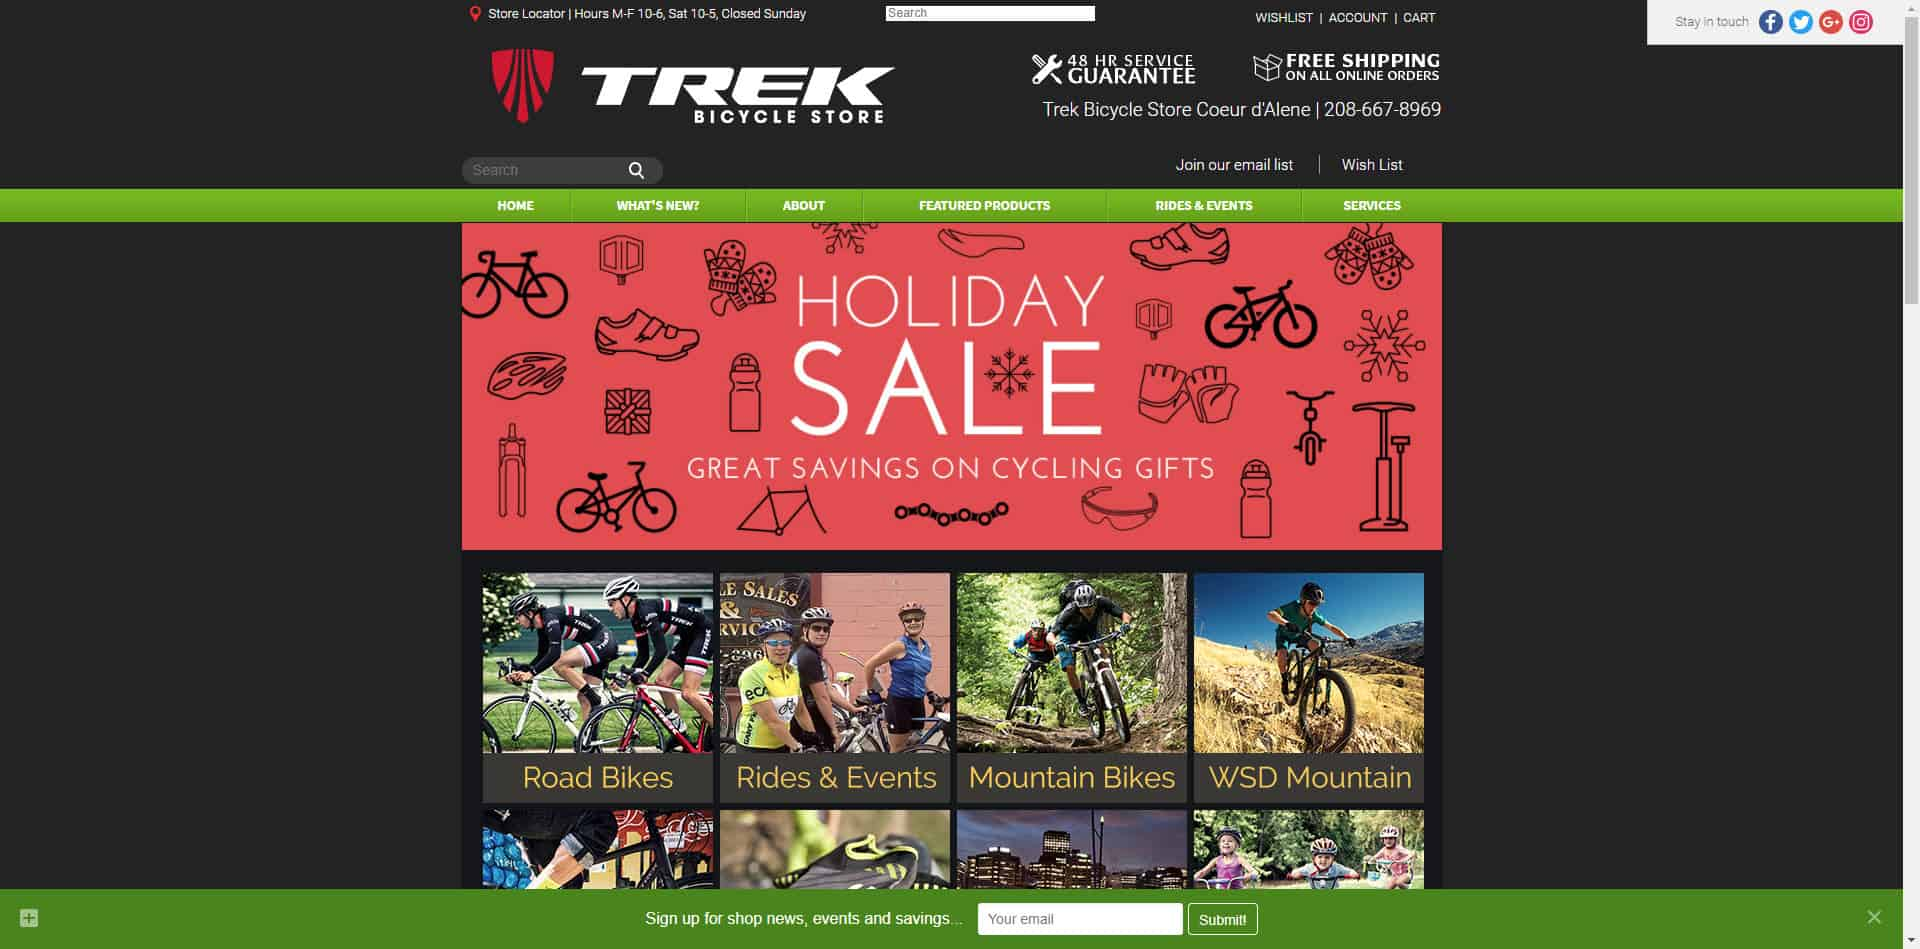 Trek Bicycle Store Coeur d'Alene